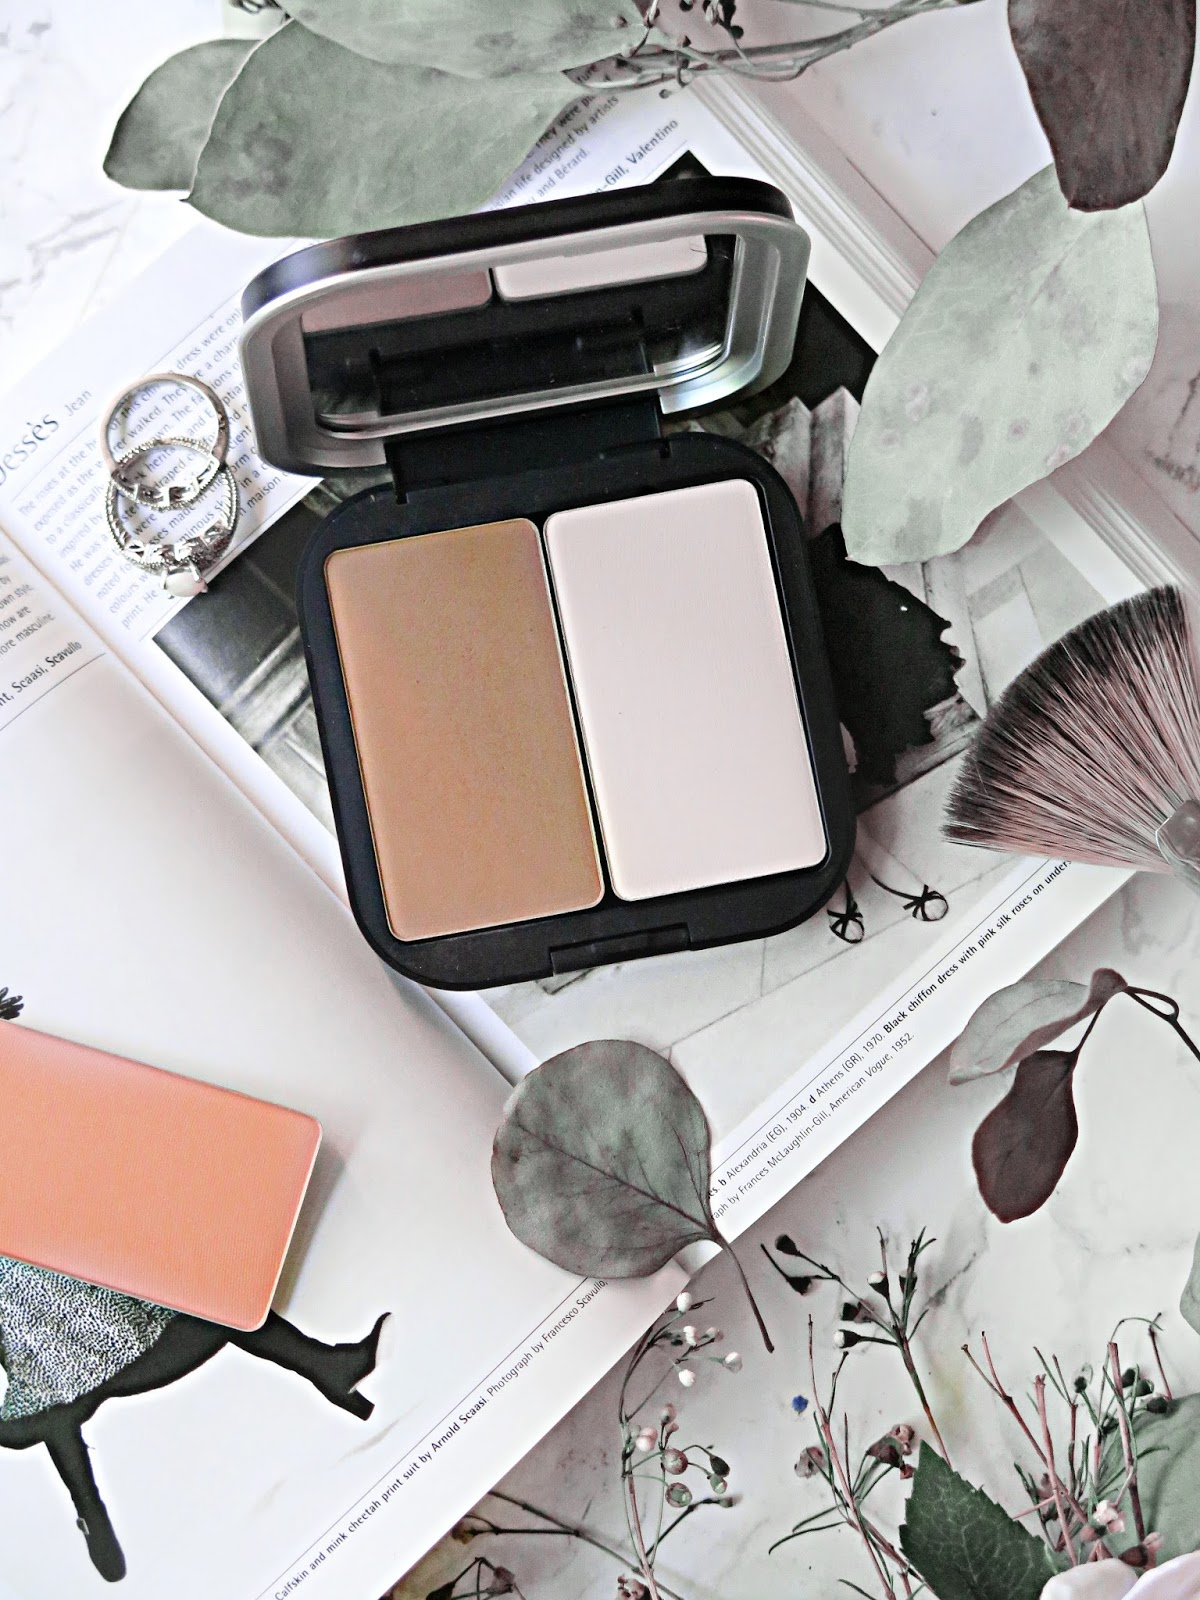 Makeup Dreams For The Organizational Hoarder | Make Up For Ever Artist Face Powders & Customizable Palette System | Review & Swatches | labellesirene.ca